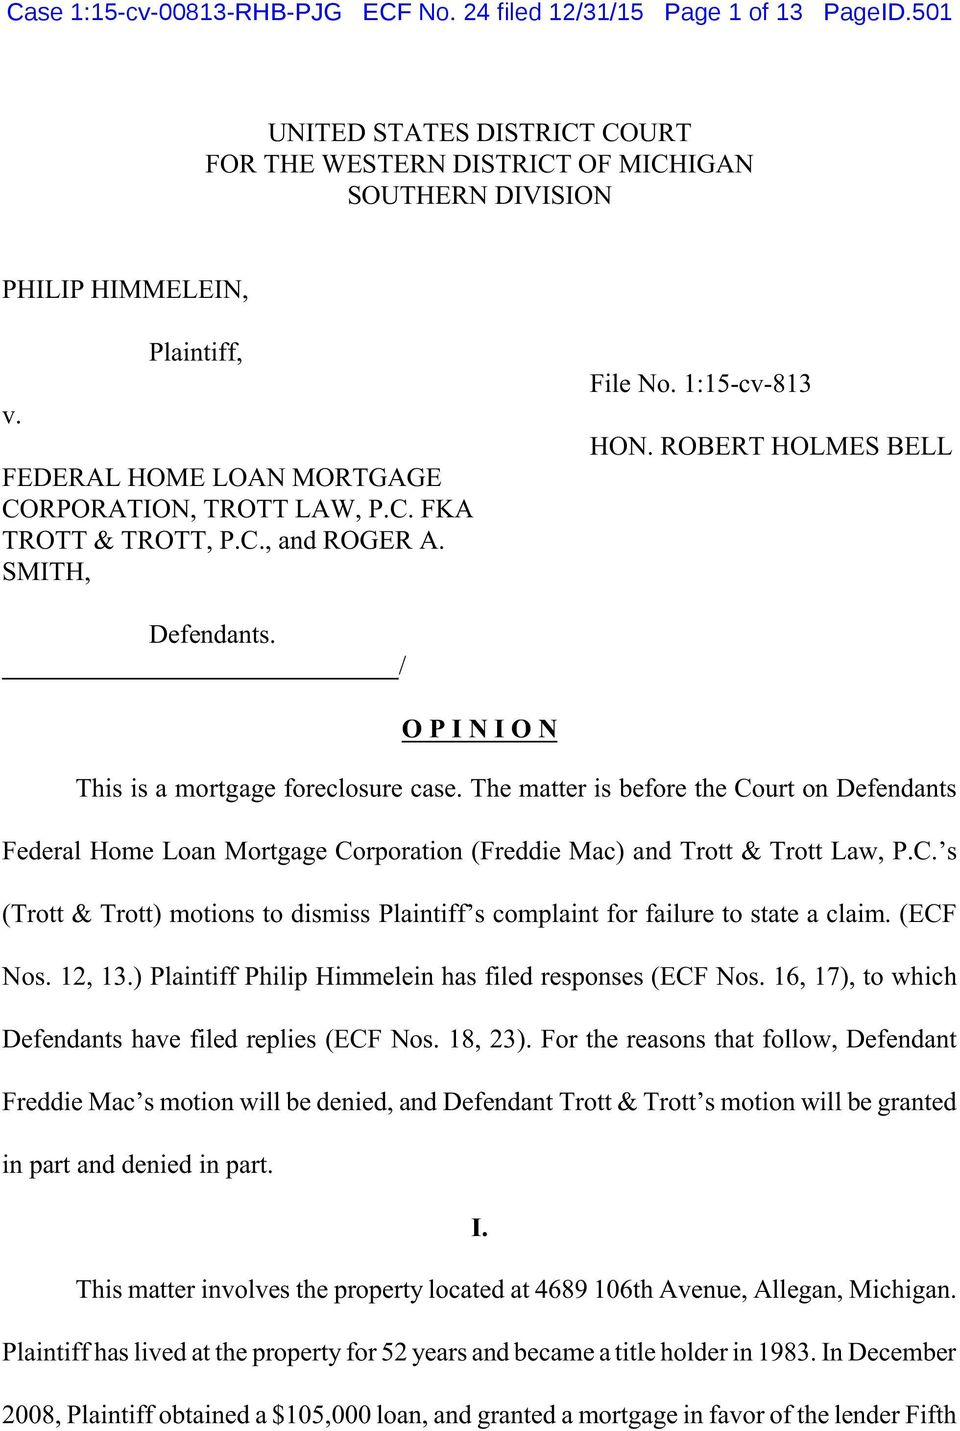 / O P I N I O N This is a mortgage foreclosure case. The matter is before the Court on Defendants Federal Home Loan Mortgage Corporation (Freddie Mac) and Trott & Trott Law, P.C. s (Trott & Trott) motions to dismiss Plaintiff s complaint for failure to state a claim.